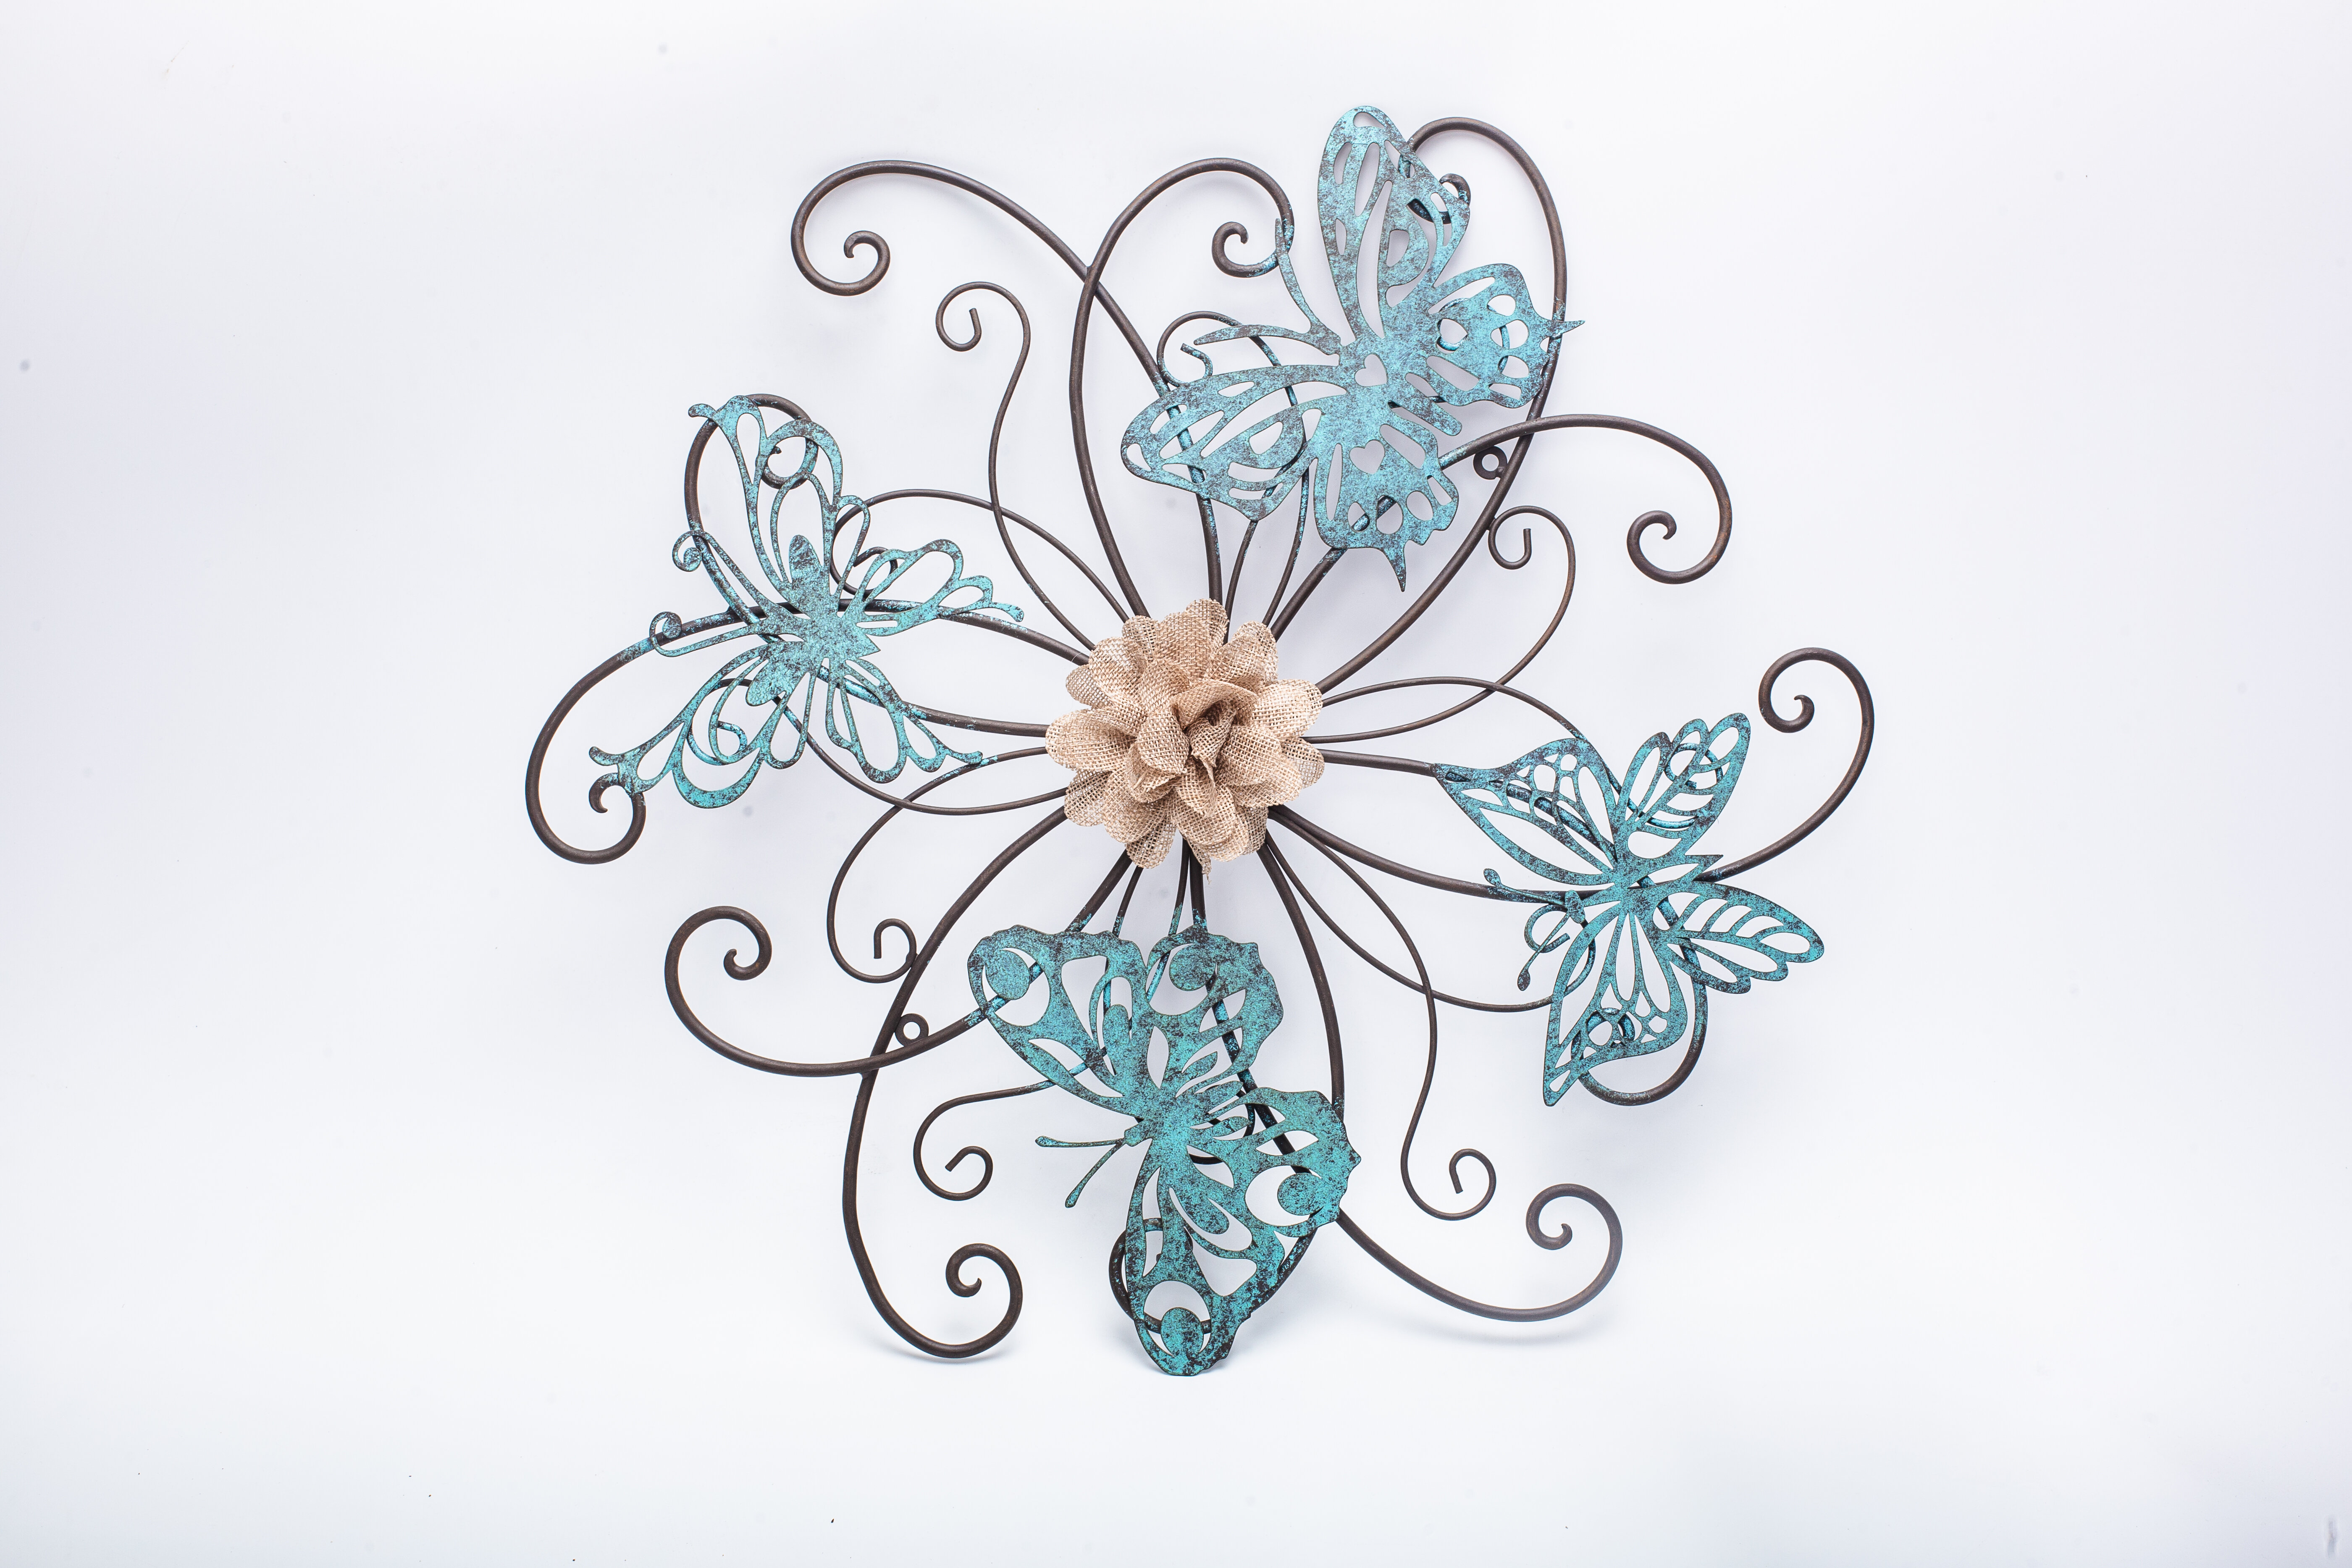 Adecotrading Flower And Butterfly Urban Design Metal Wall Décor Intended For Most Recently Released Raheem Flowers Metal Wall Decor By Alcott Hill (View 1 of 20)